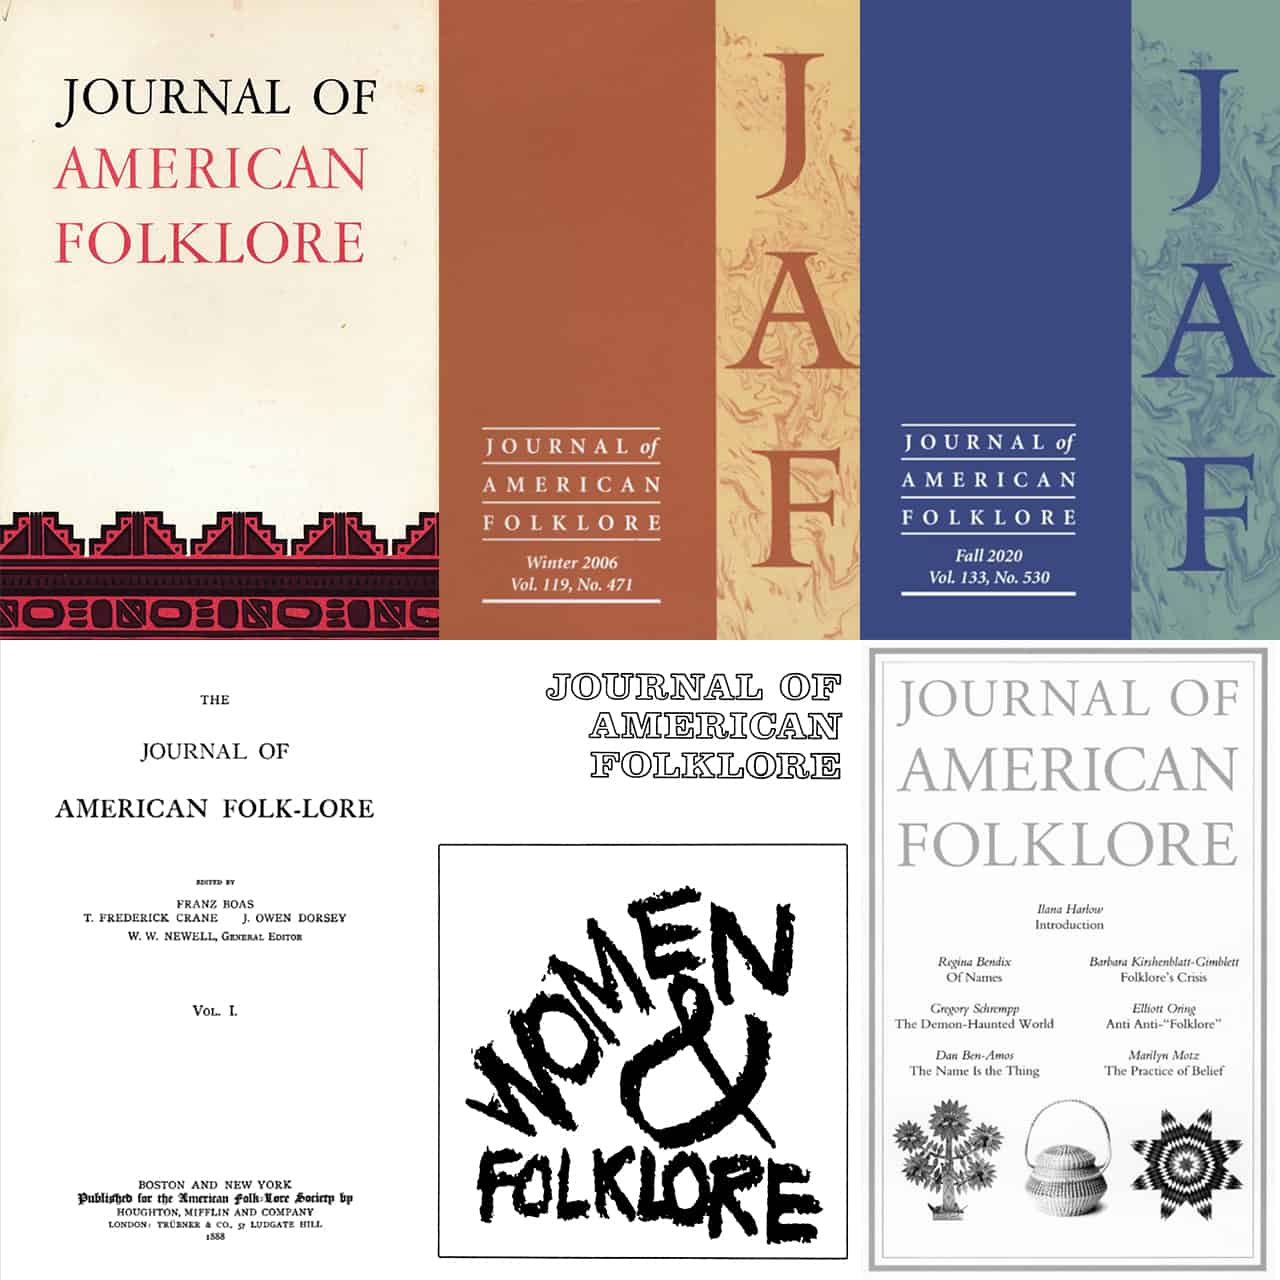 collection of historical and recent Journal of American Folklore covers